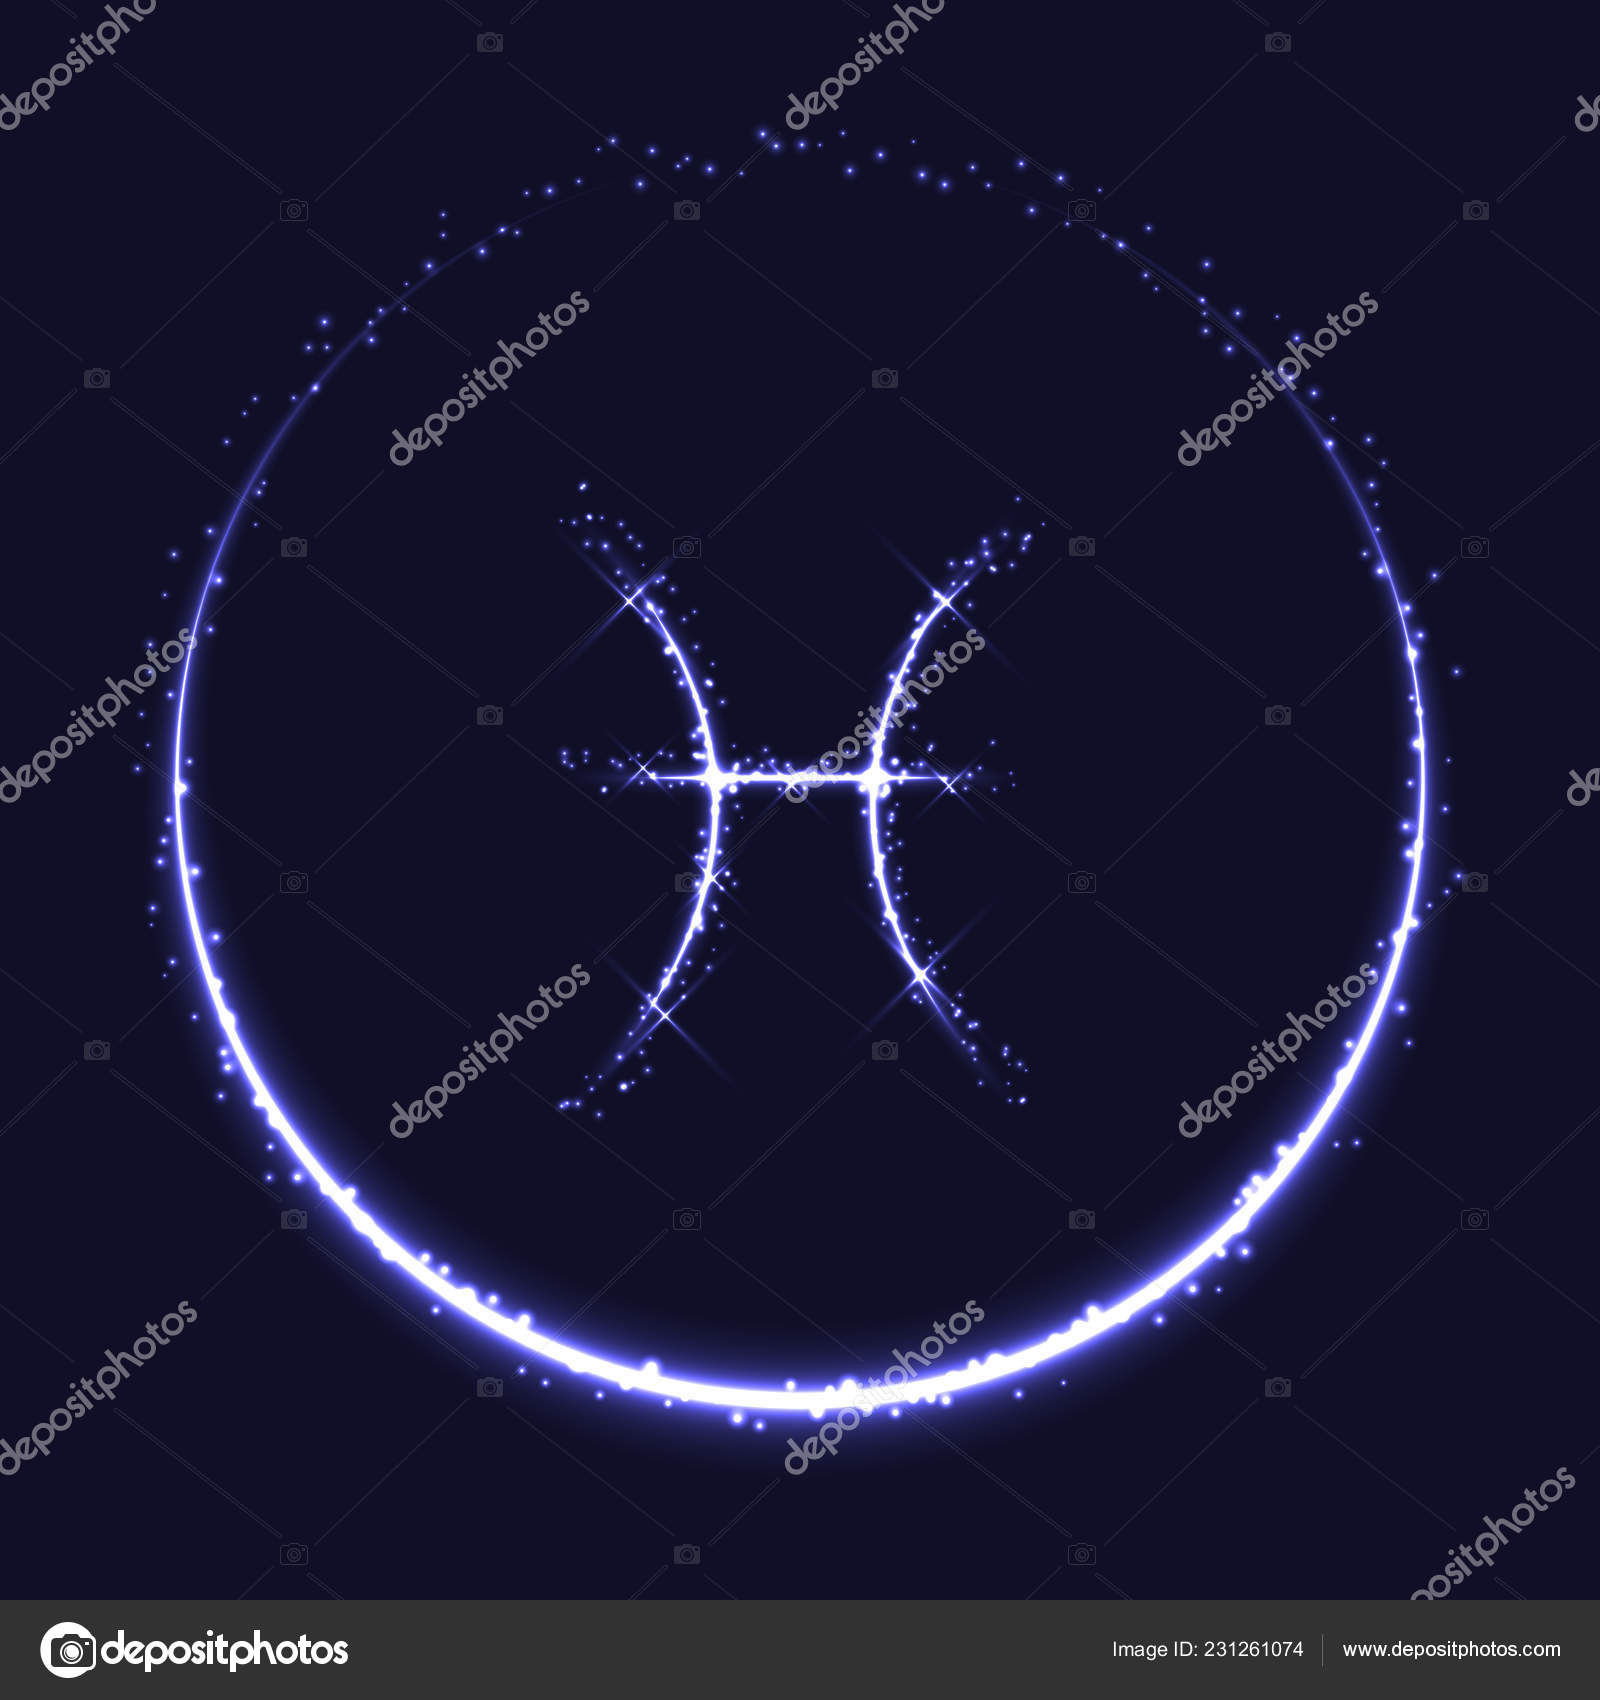 da17a8cbf Astrological symbol of Pisces. Abstract vector shiny western Zodiac  Horoscope sign and crescent moon on dark blue background.– stock  illustration